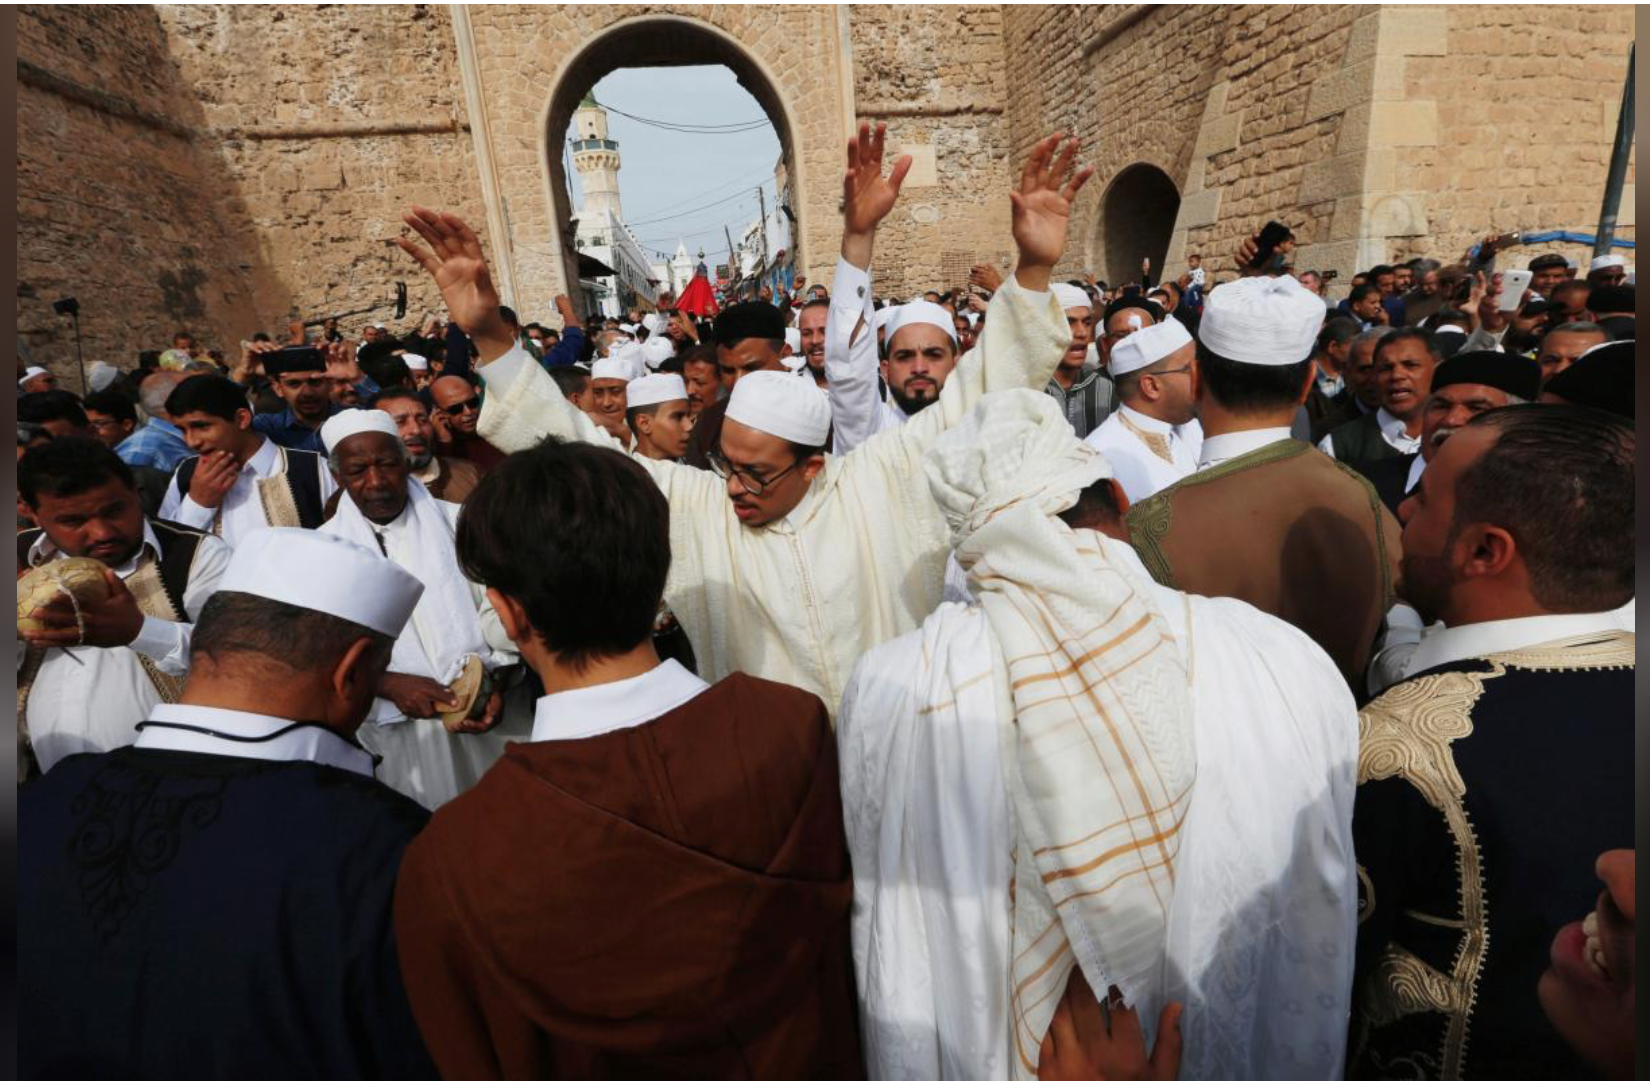 Libyan Sufis celebrate Prophet's birthday despite security fears